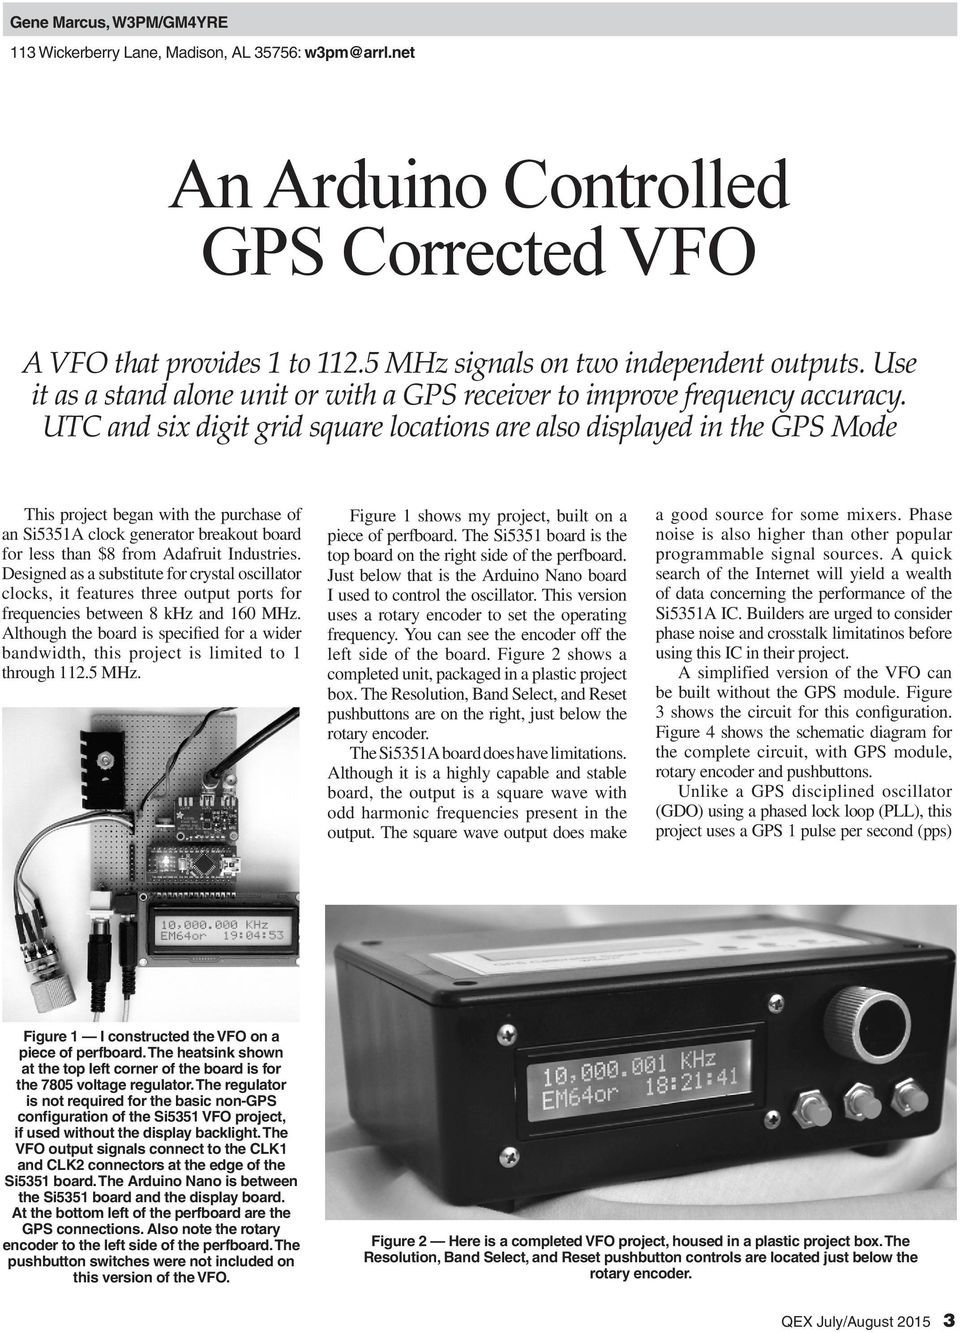 An Arduino Controlled GPS Corrected VFO - PDF